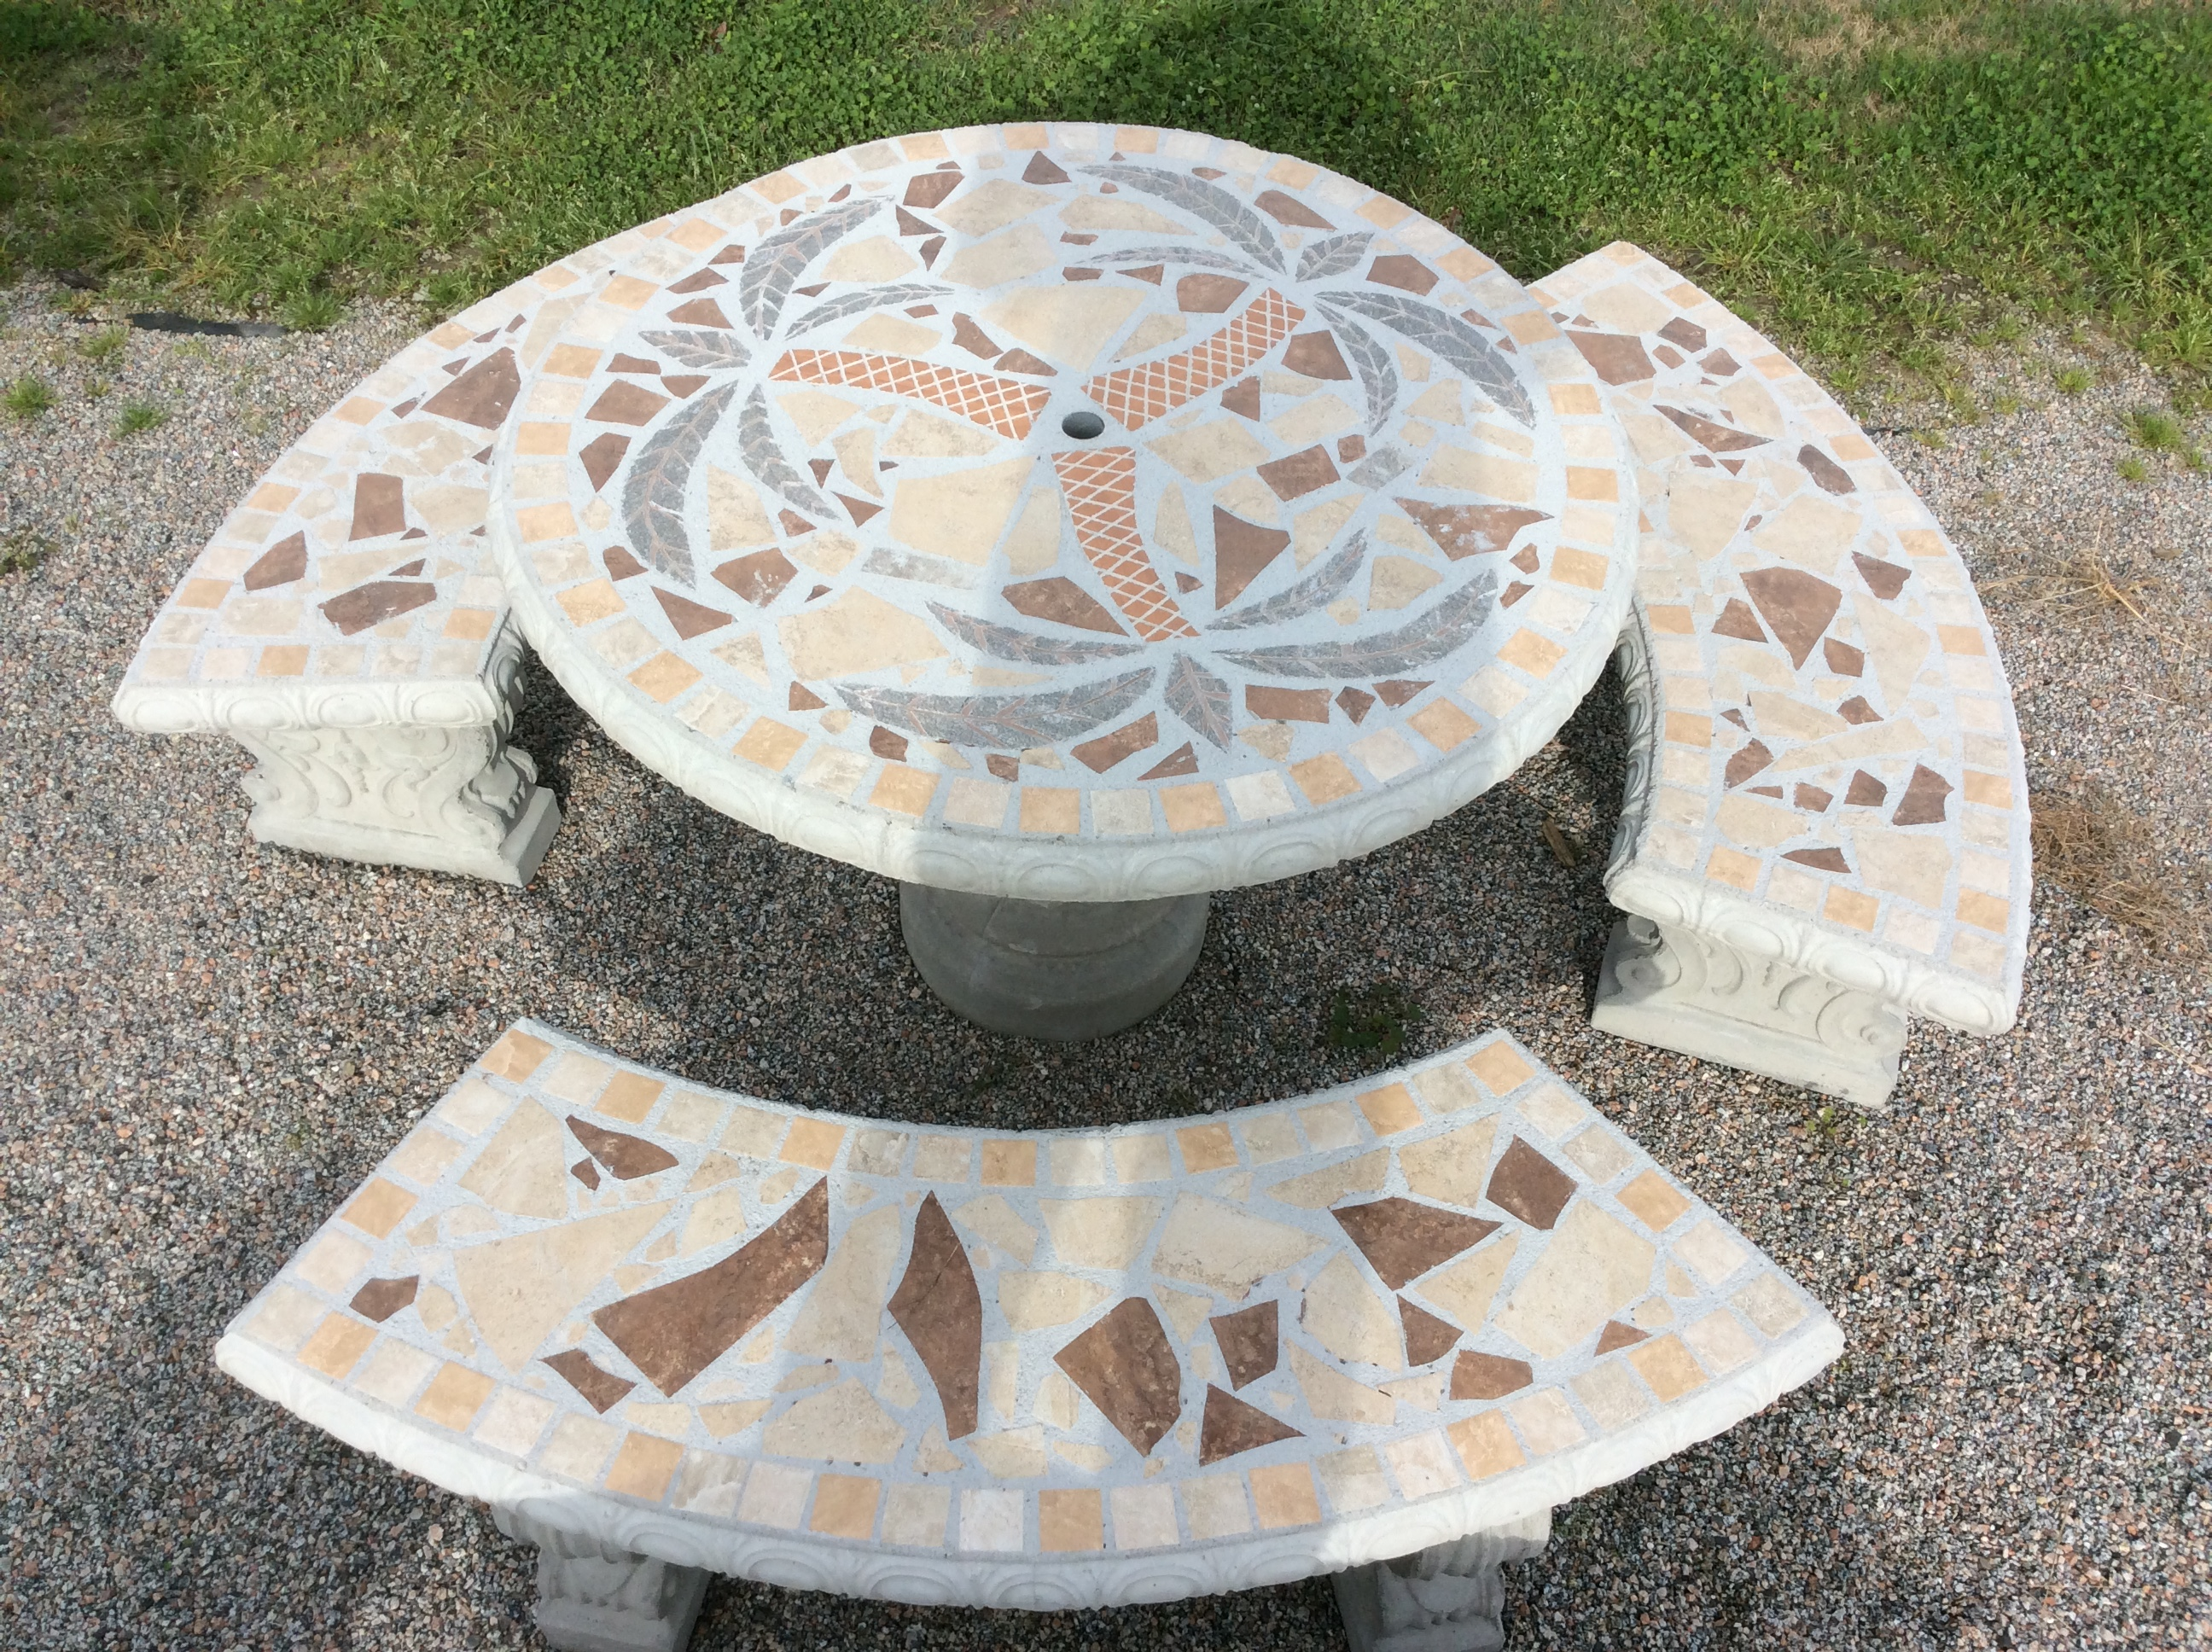 tbs112 Palm Tree Mosaic Table Set